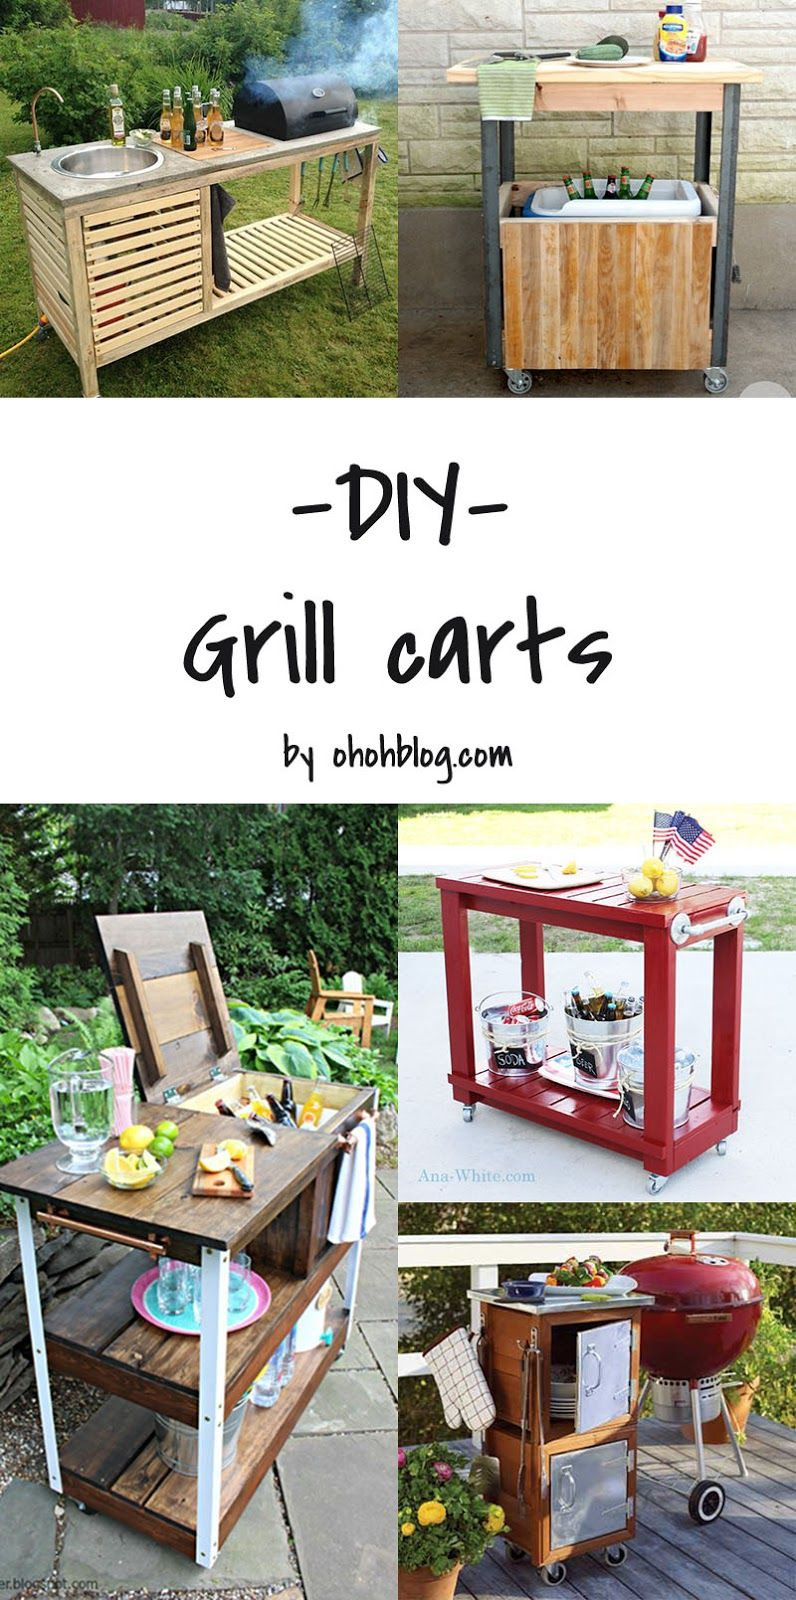 DIY To Try # Grill Carts